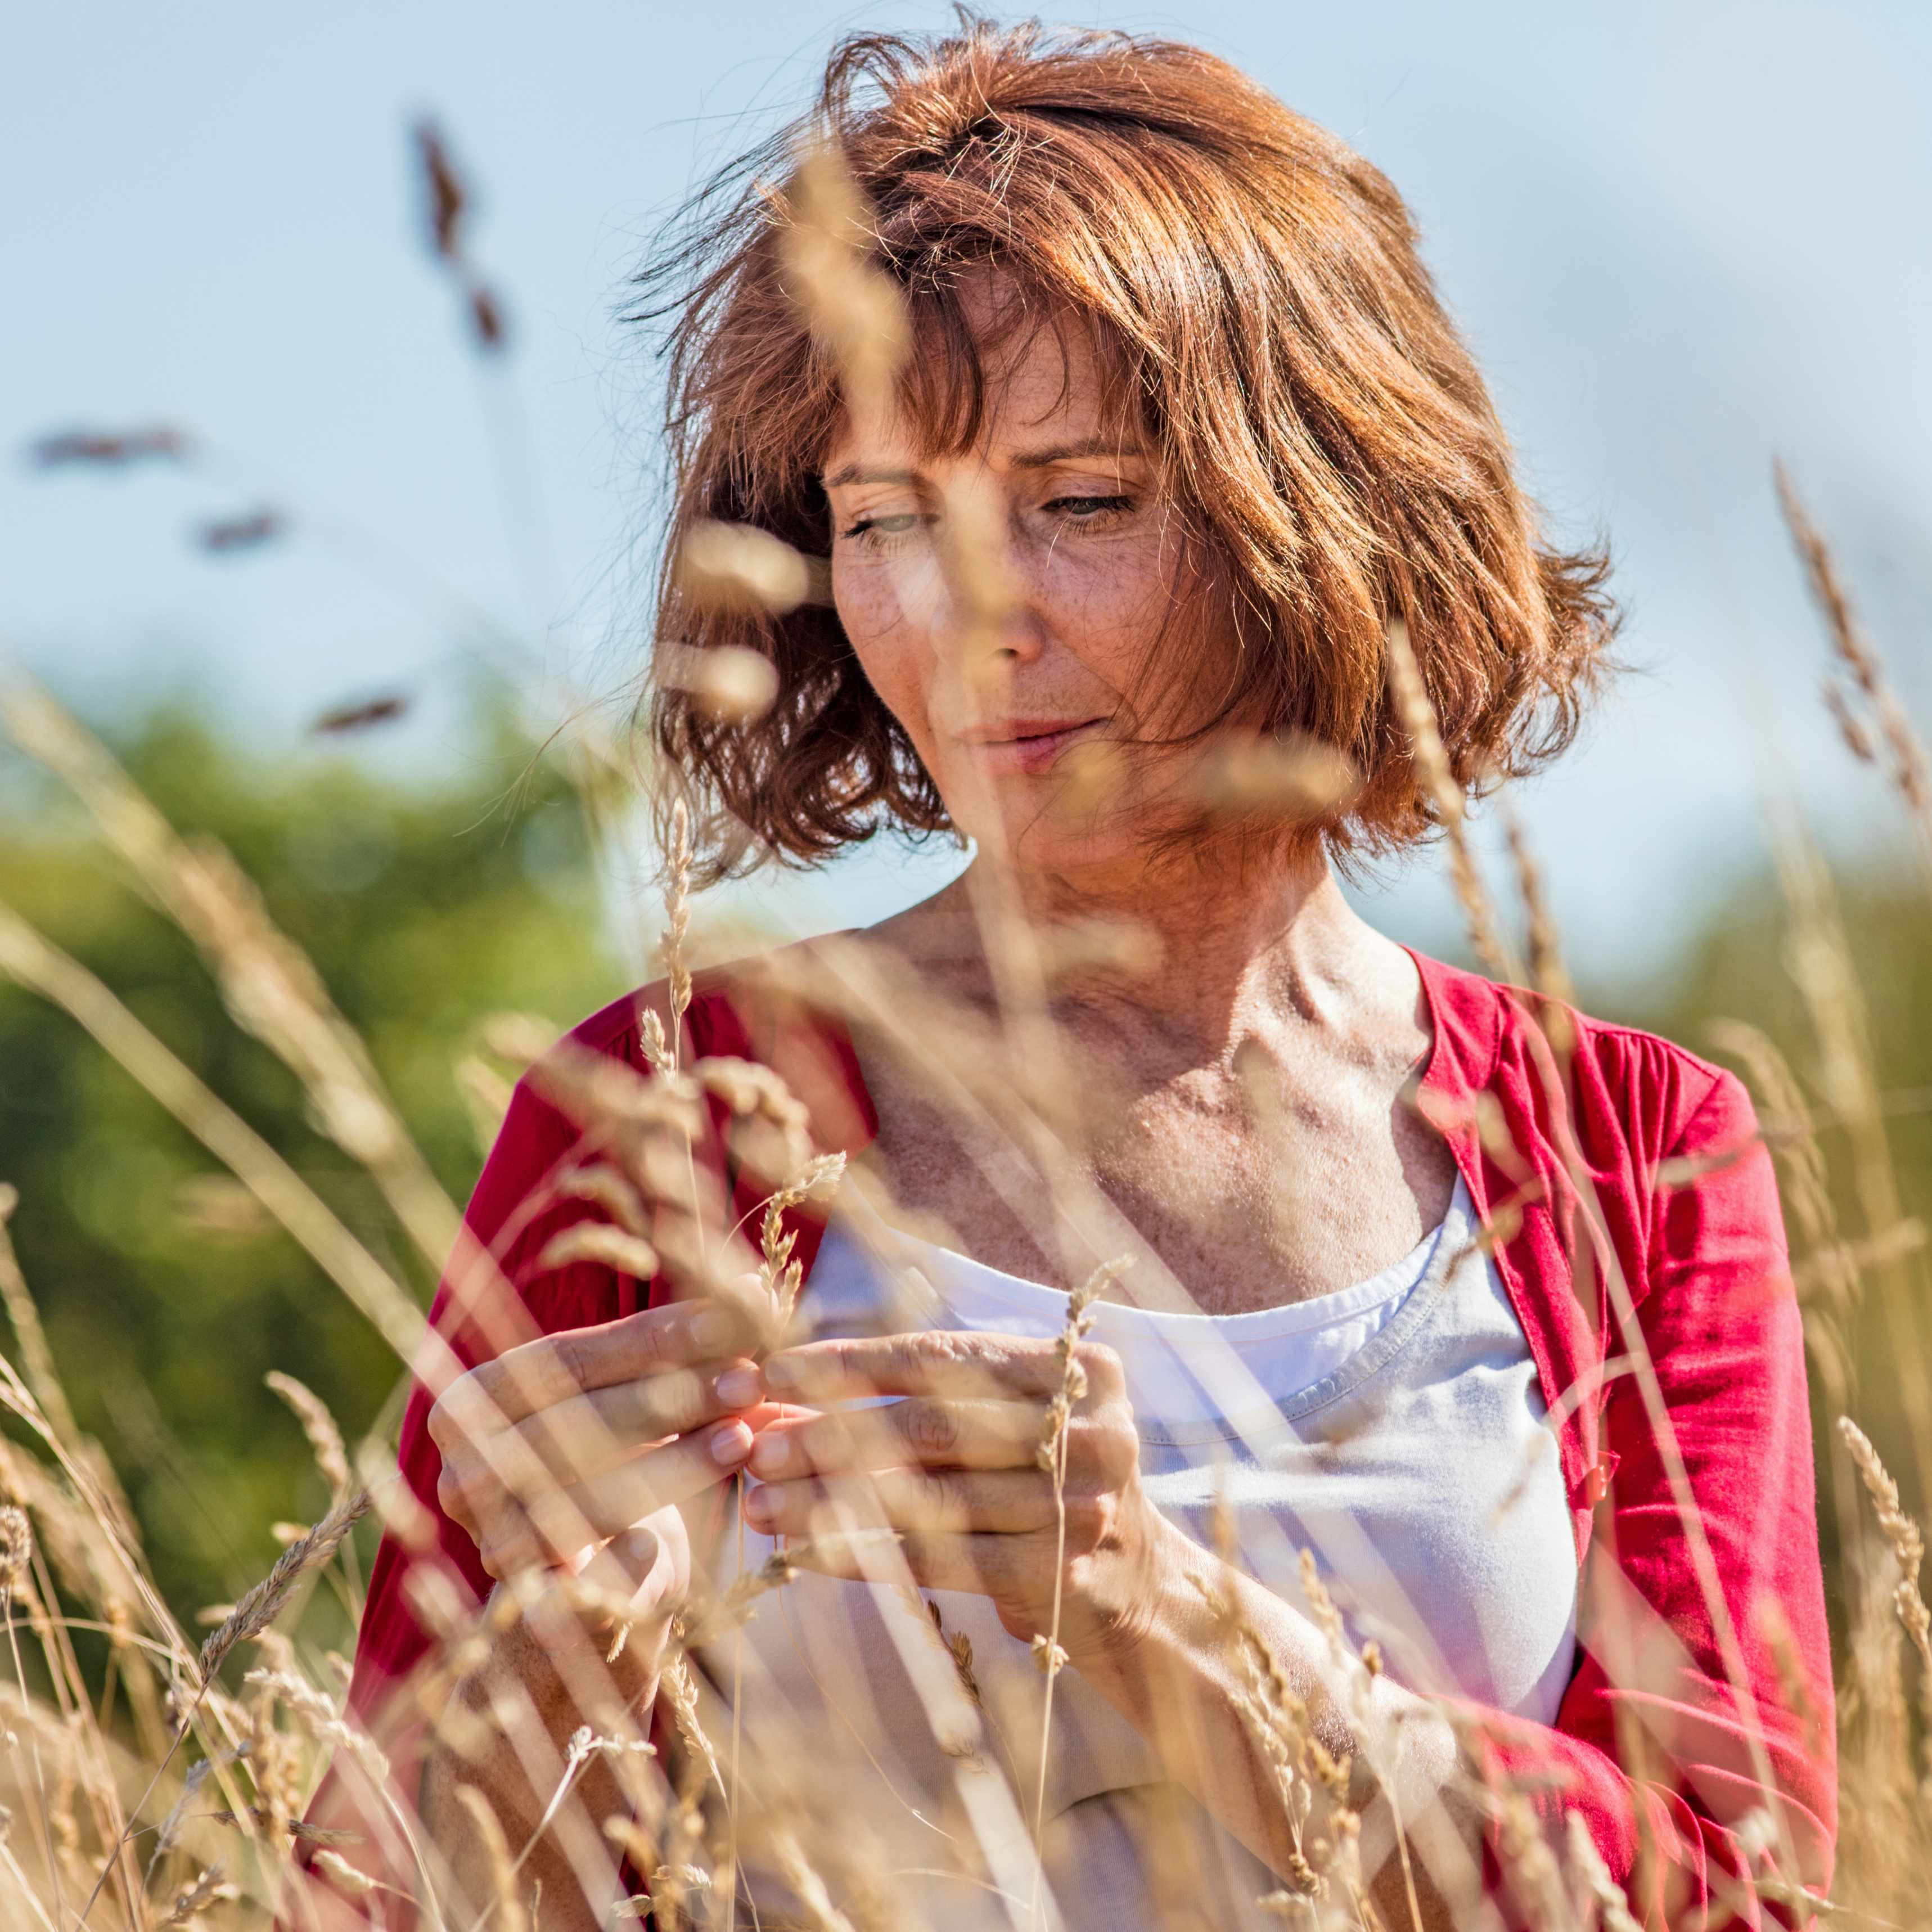 a middle-aged woman outside in a field, looking serious and thinking